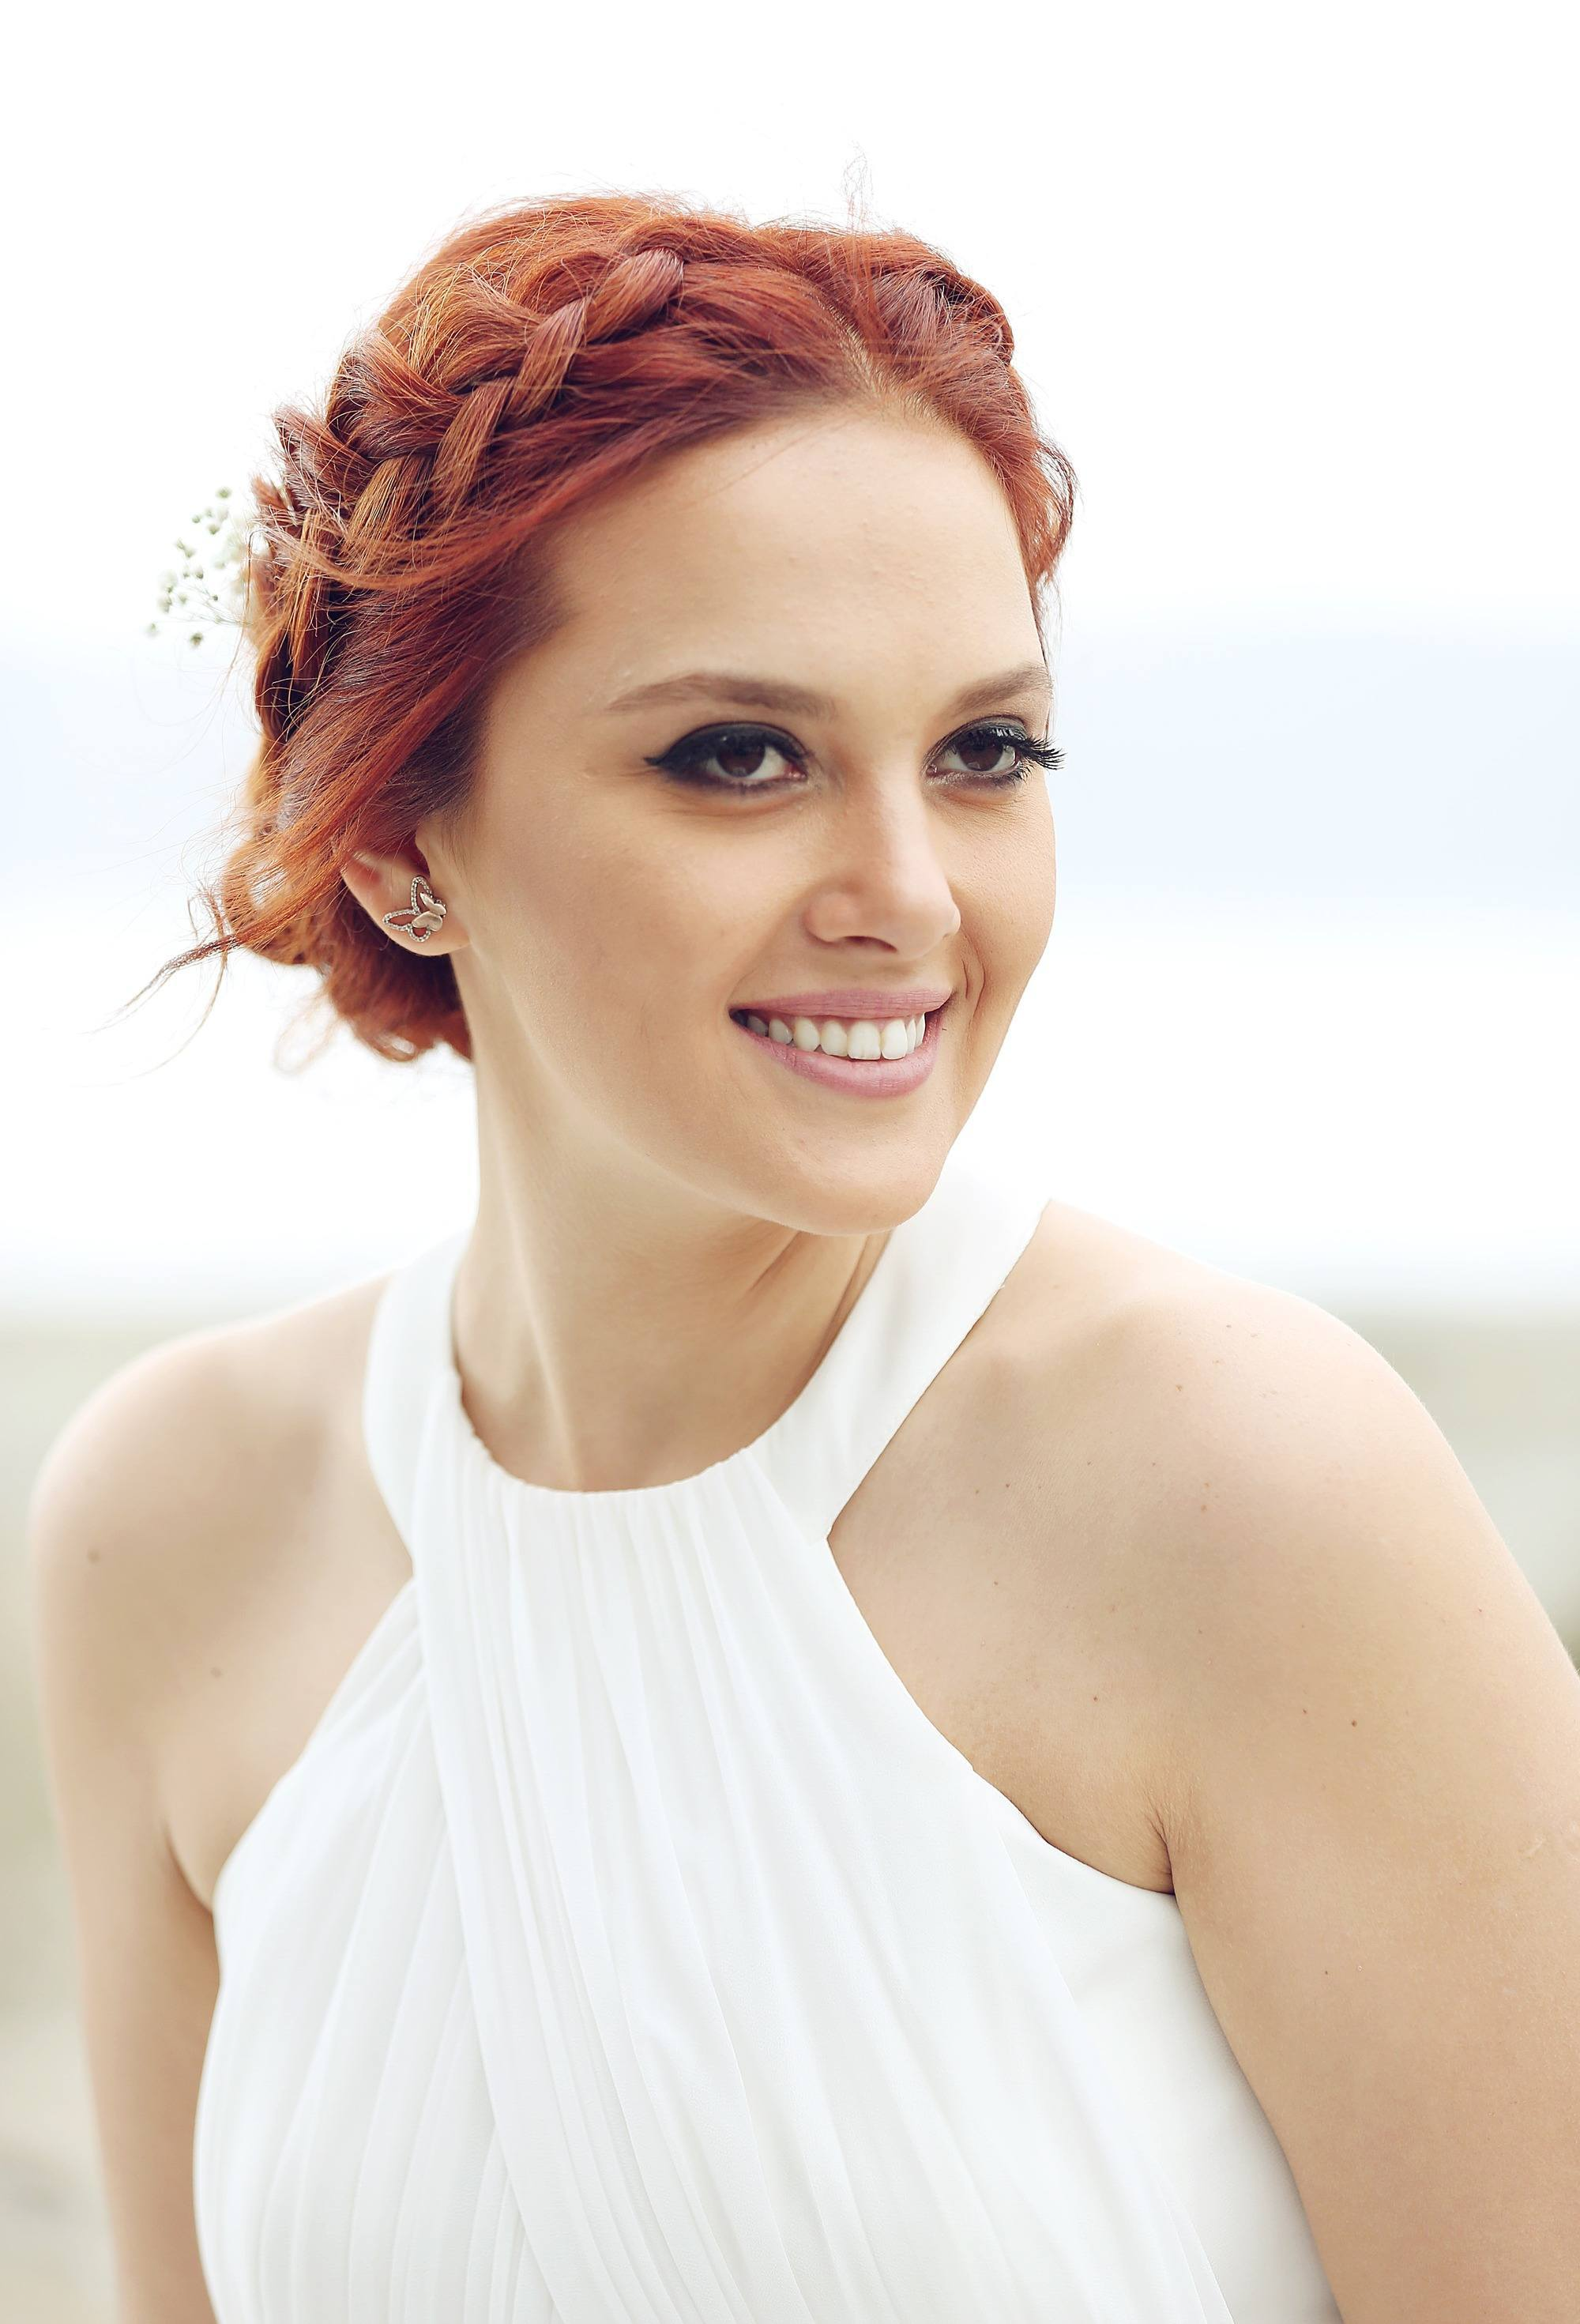 woman with red hair wearing middle part halo braid hairstyle